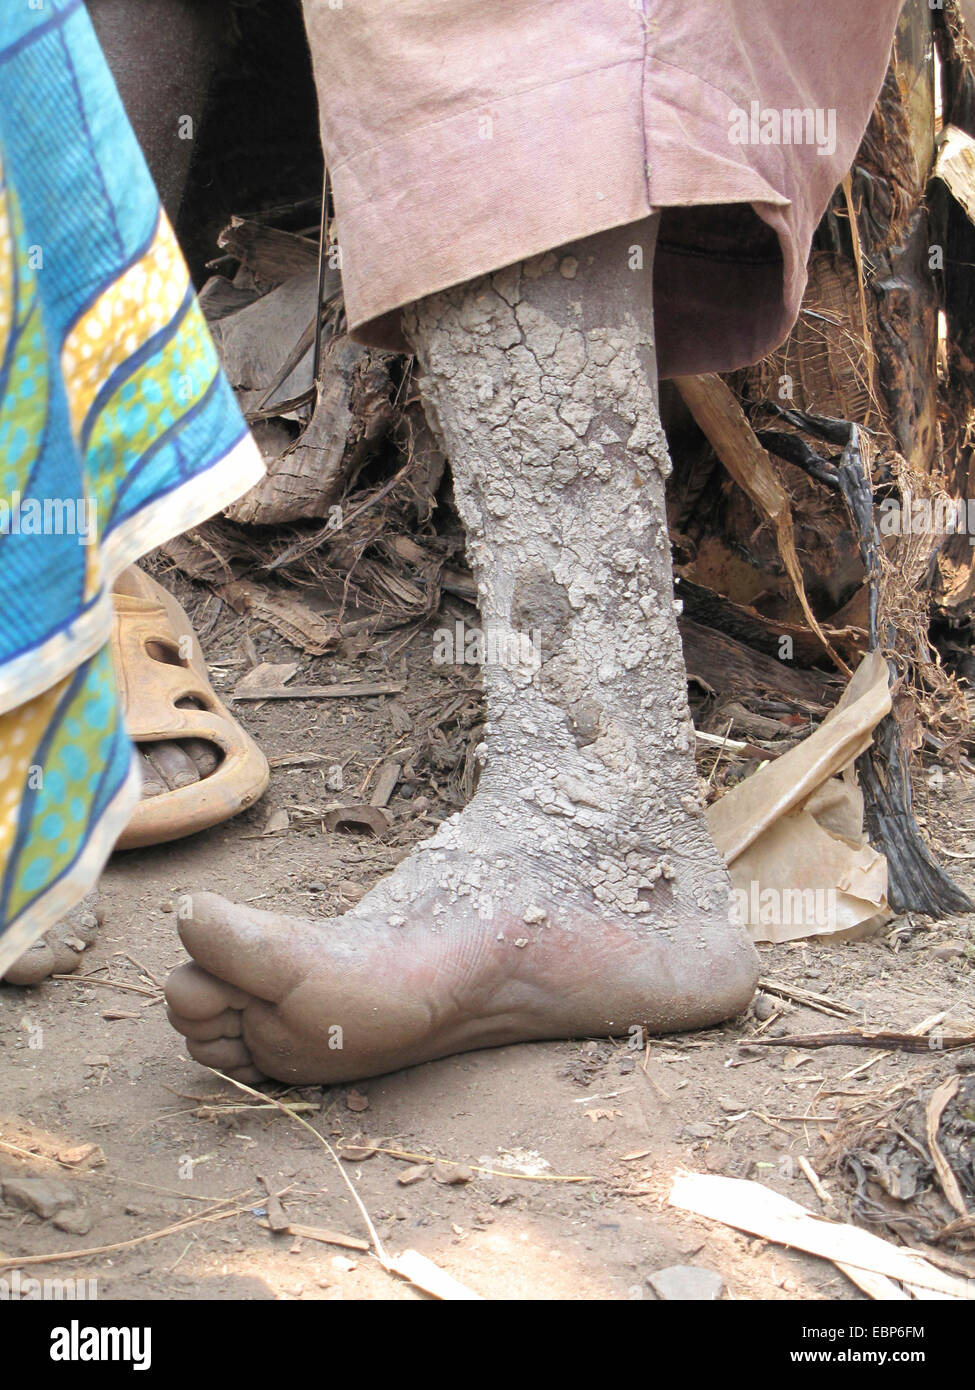 mud-covered leg of a male member of the minority of the Batwa living in a rural area, Burundi, Bujumbura rural, - Stock Image